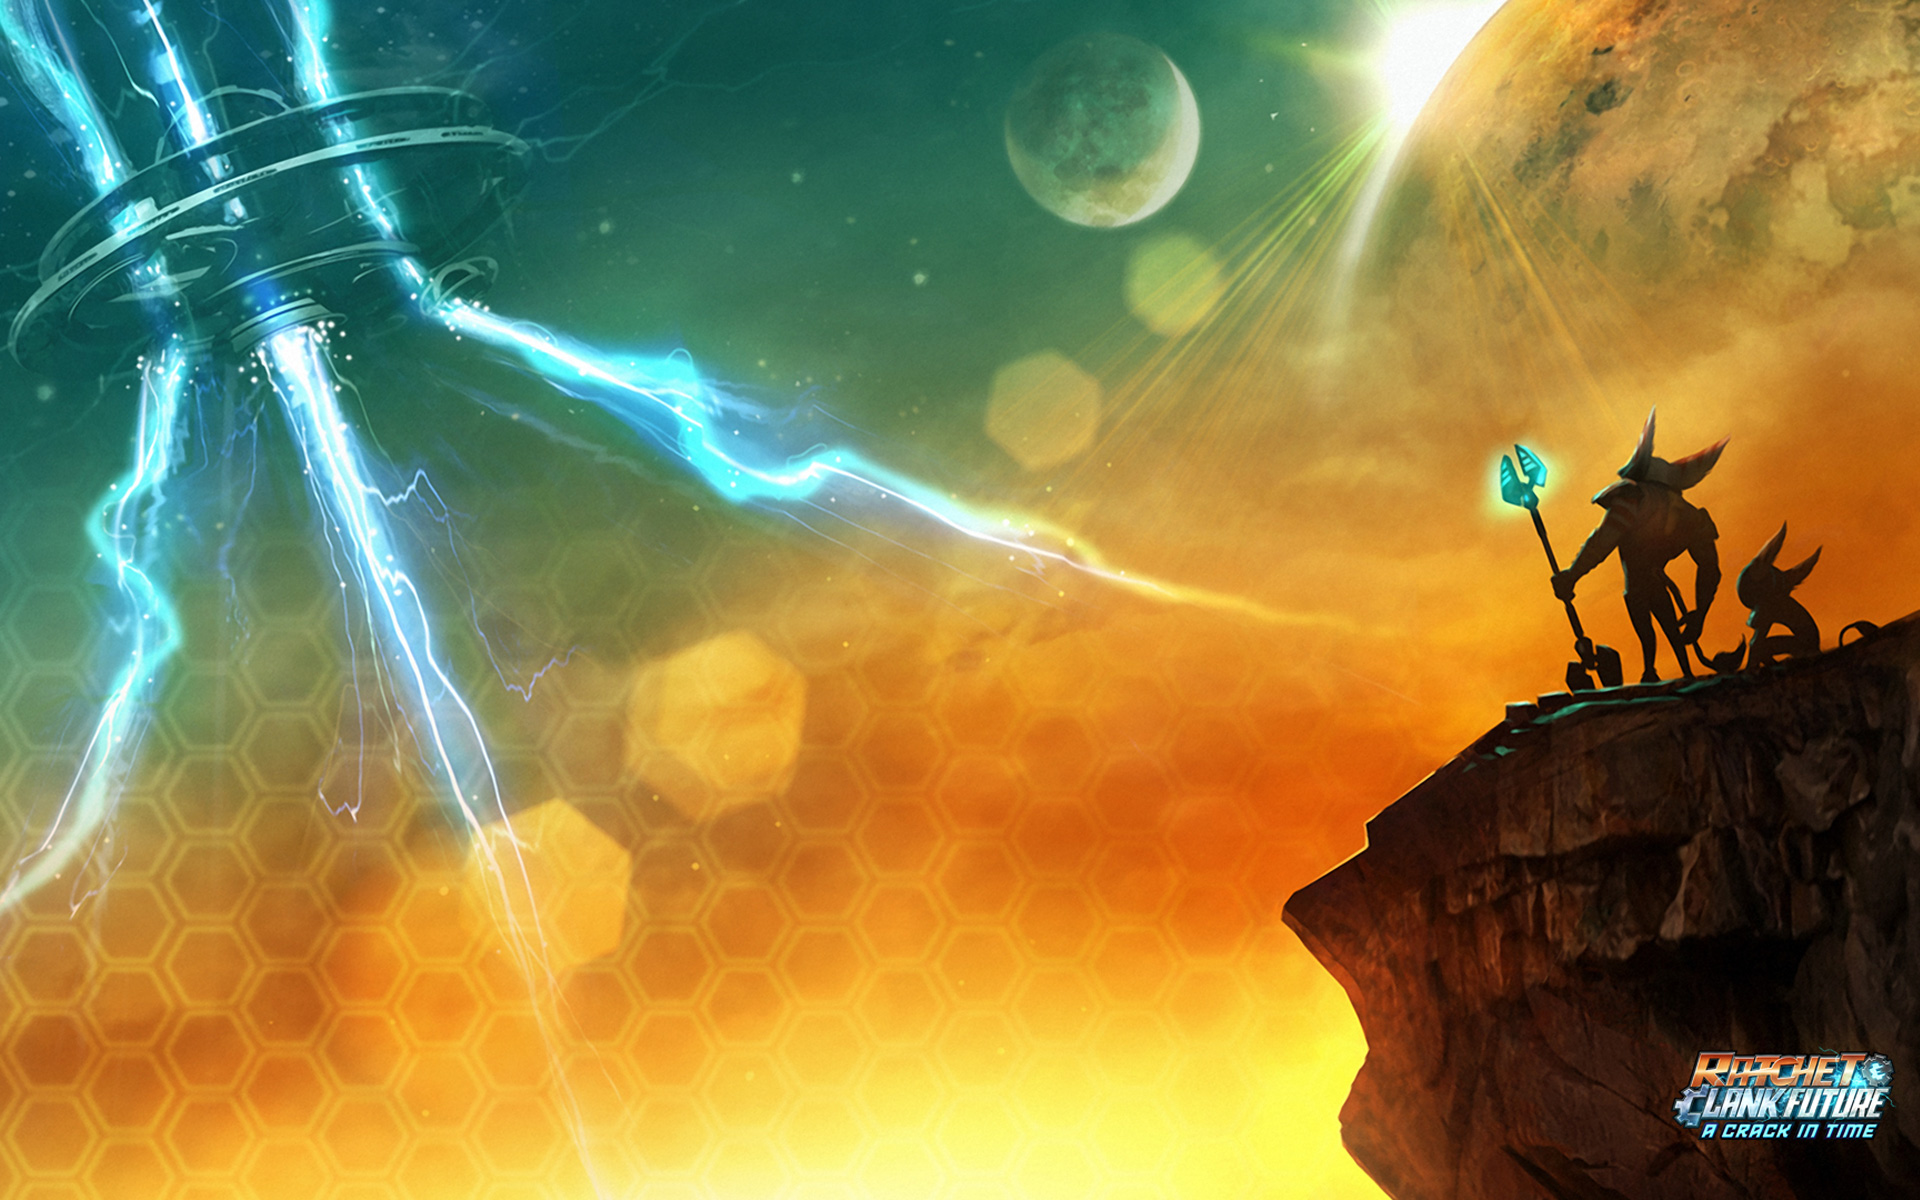 Free Ratchet & Clank Future: A Crack in Time Wallpaper in 1920x1200